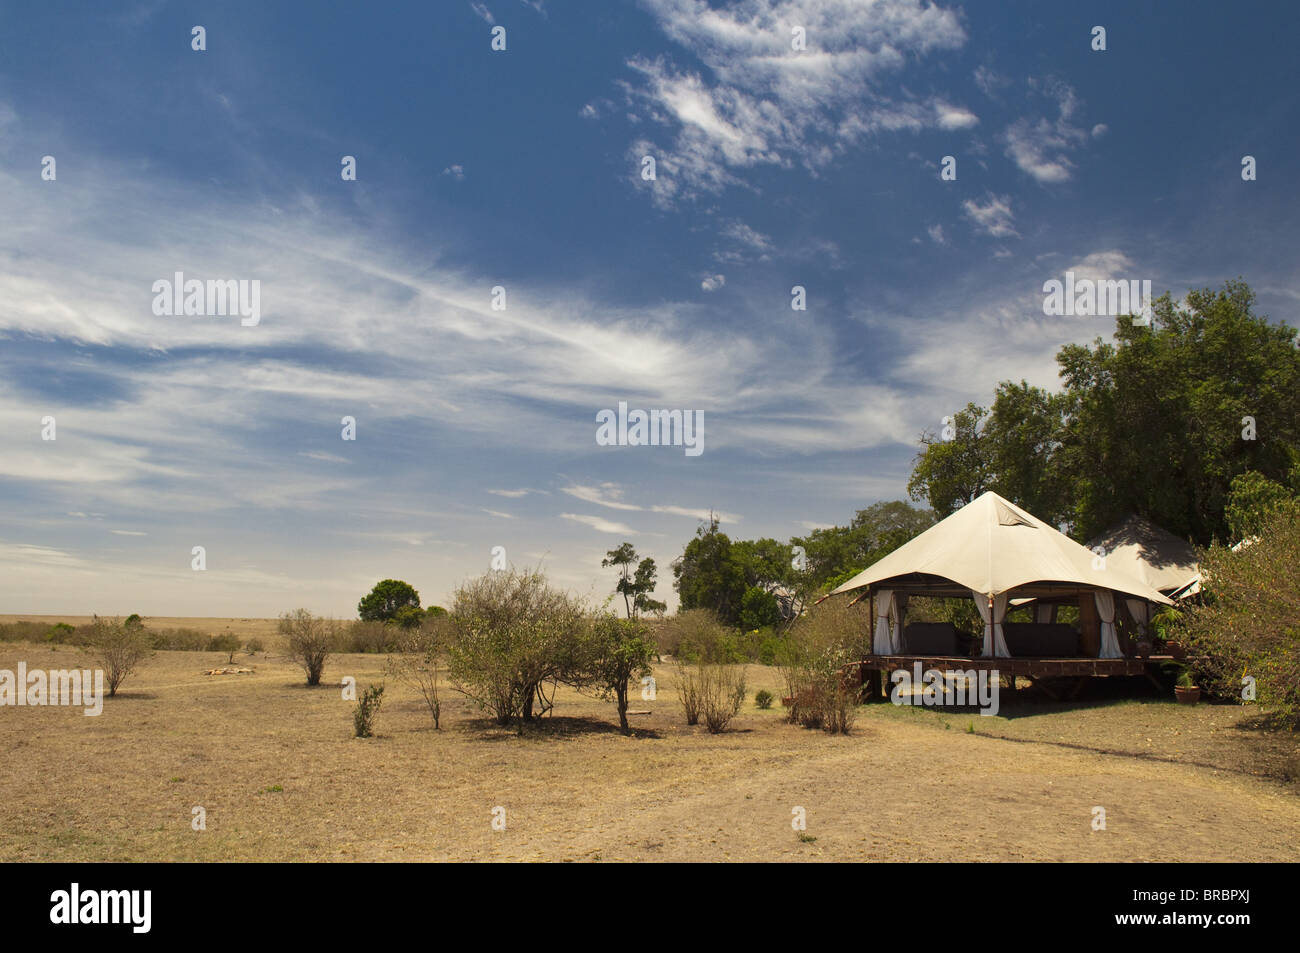 Mara Plains Tented Camp, Masai Mara, Kenya., East Africa - Stock Image